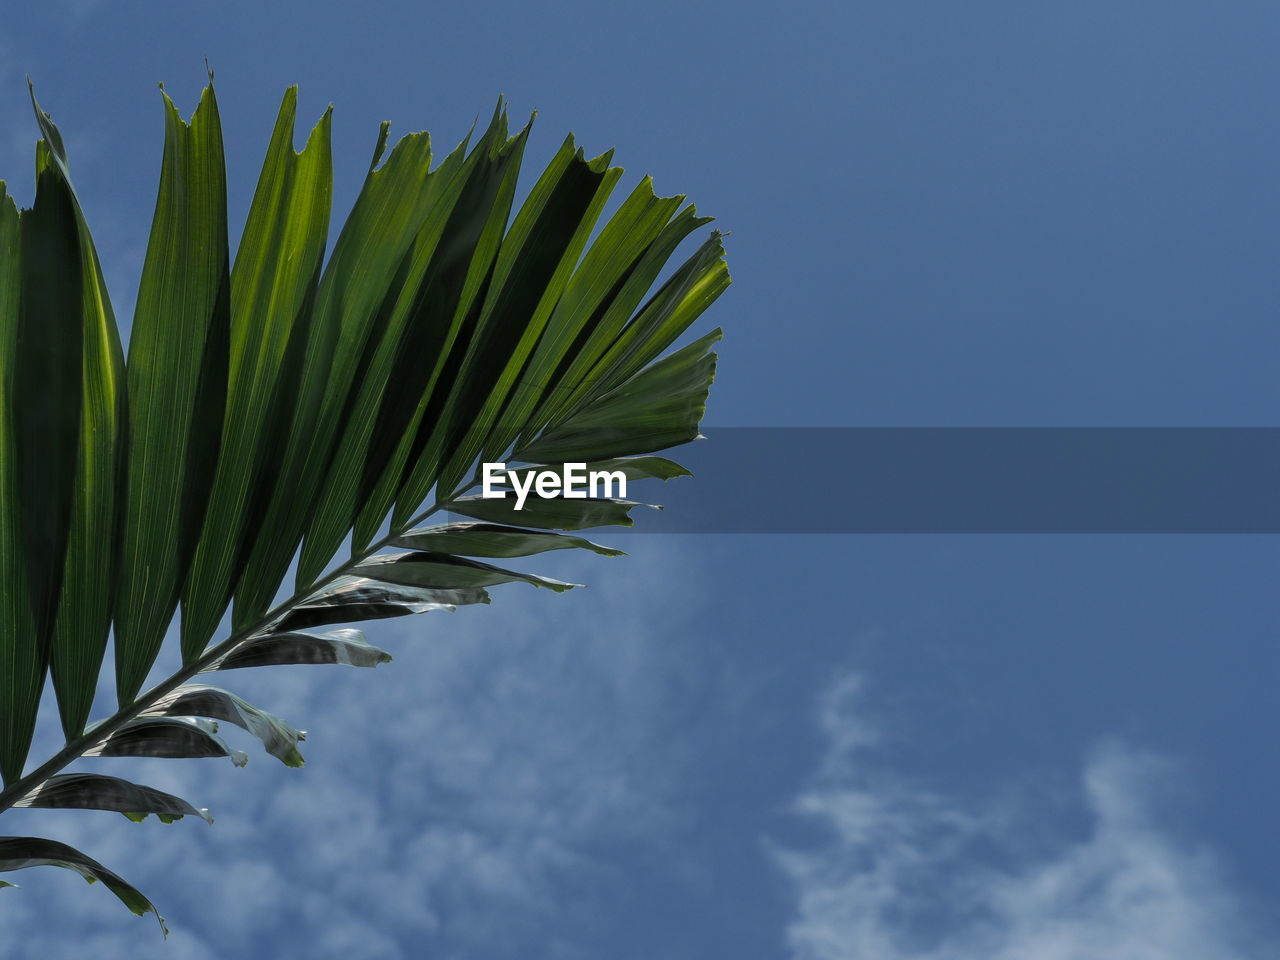 sky, leaf, green color, growth, plant part, cloud - sky, plant, low angle view, no people, nature, beauty in nature, day, close-up, blue, palm leaf, palm tree, tree, outdoors, freshness, focus on foreground, leaves, spiky